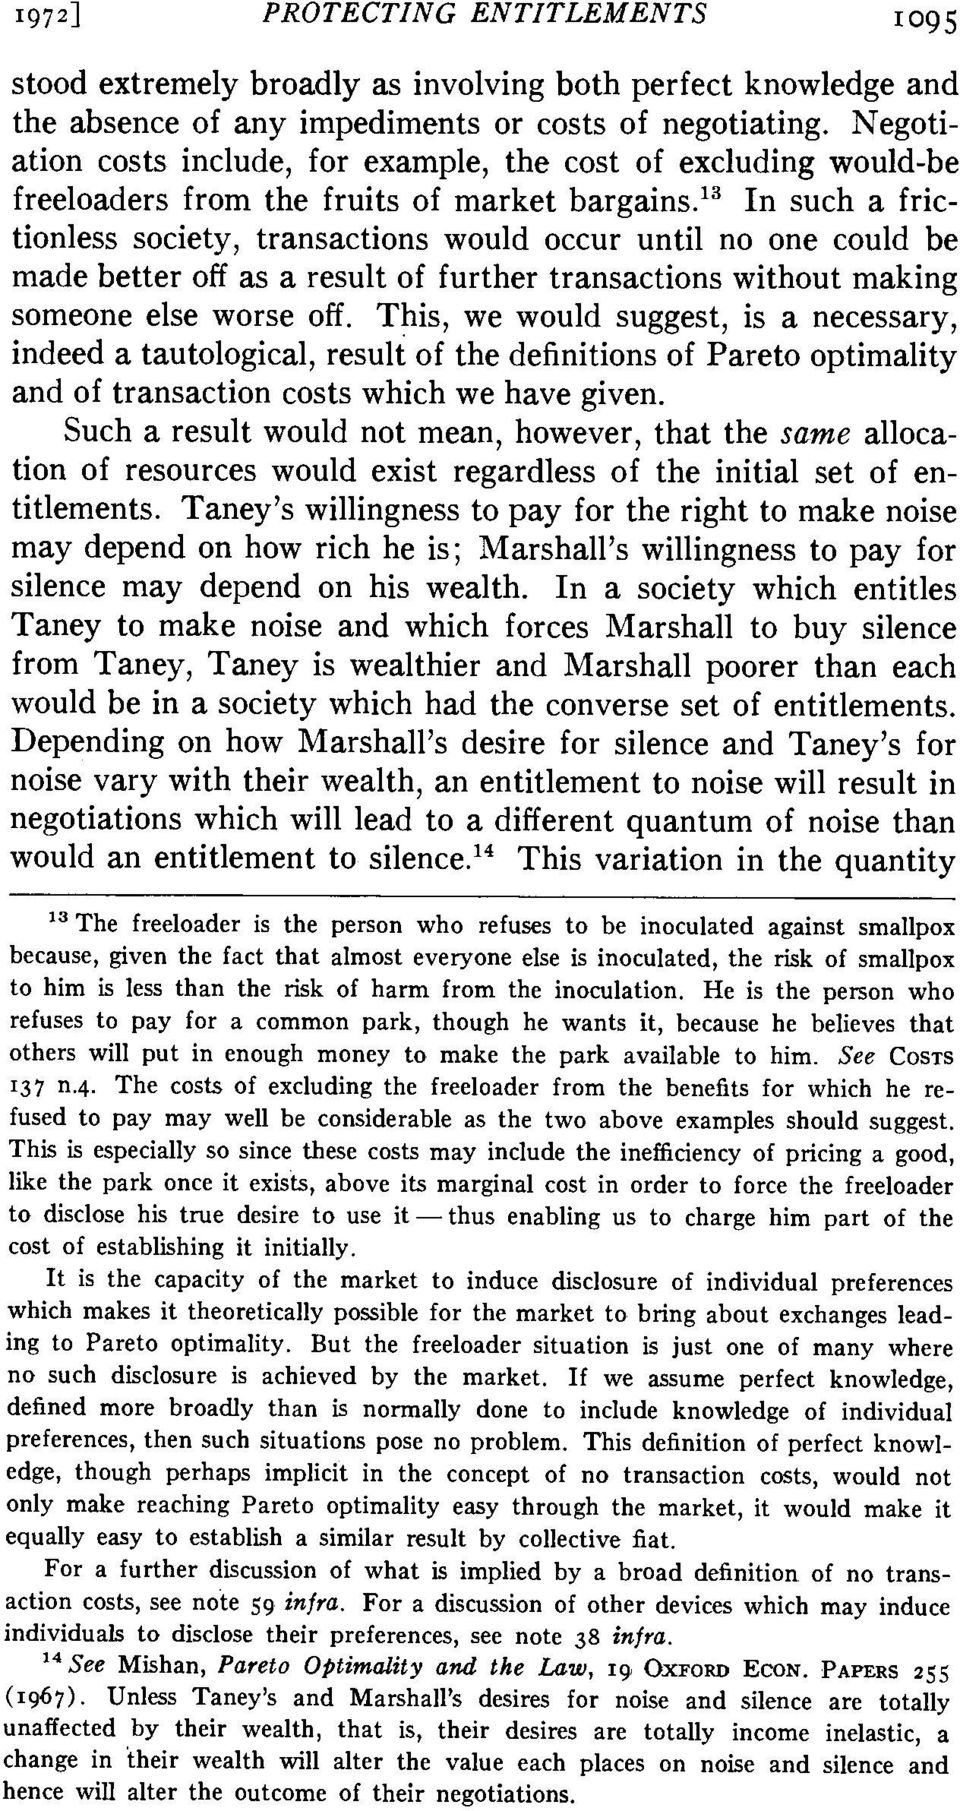 l3 In such a frictionless society, transactions would occur until no one could be made better off as a result of further transactions without making someone else worse off.